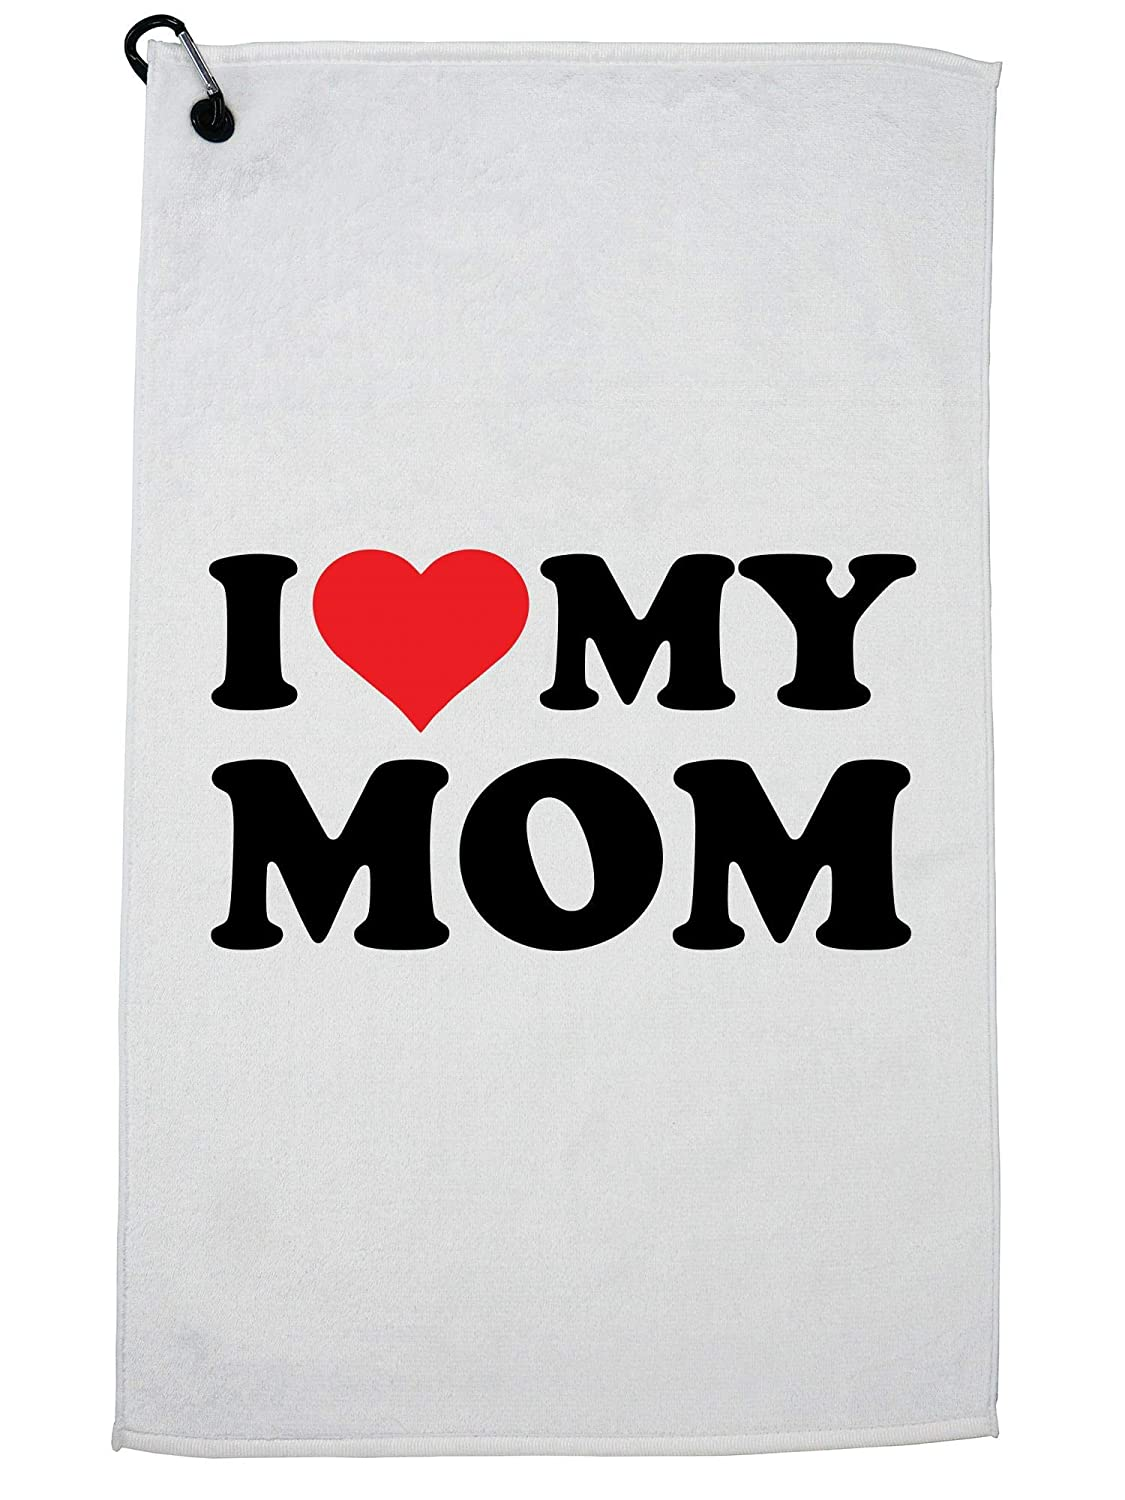 95a4d2f48 Amazon.com : Hollywood Thread I Love My Mom - Big Red Heart - Perfect  Mother Gift Golf Towel with Carabiner Clip : Sports & Outdoors